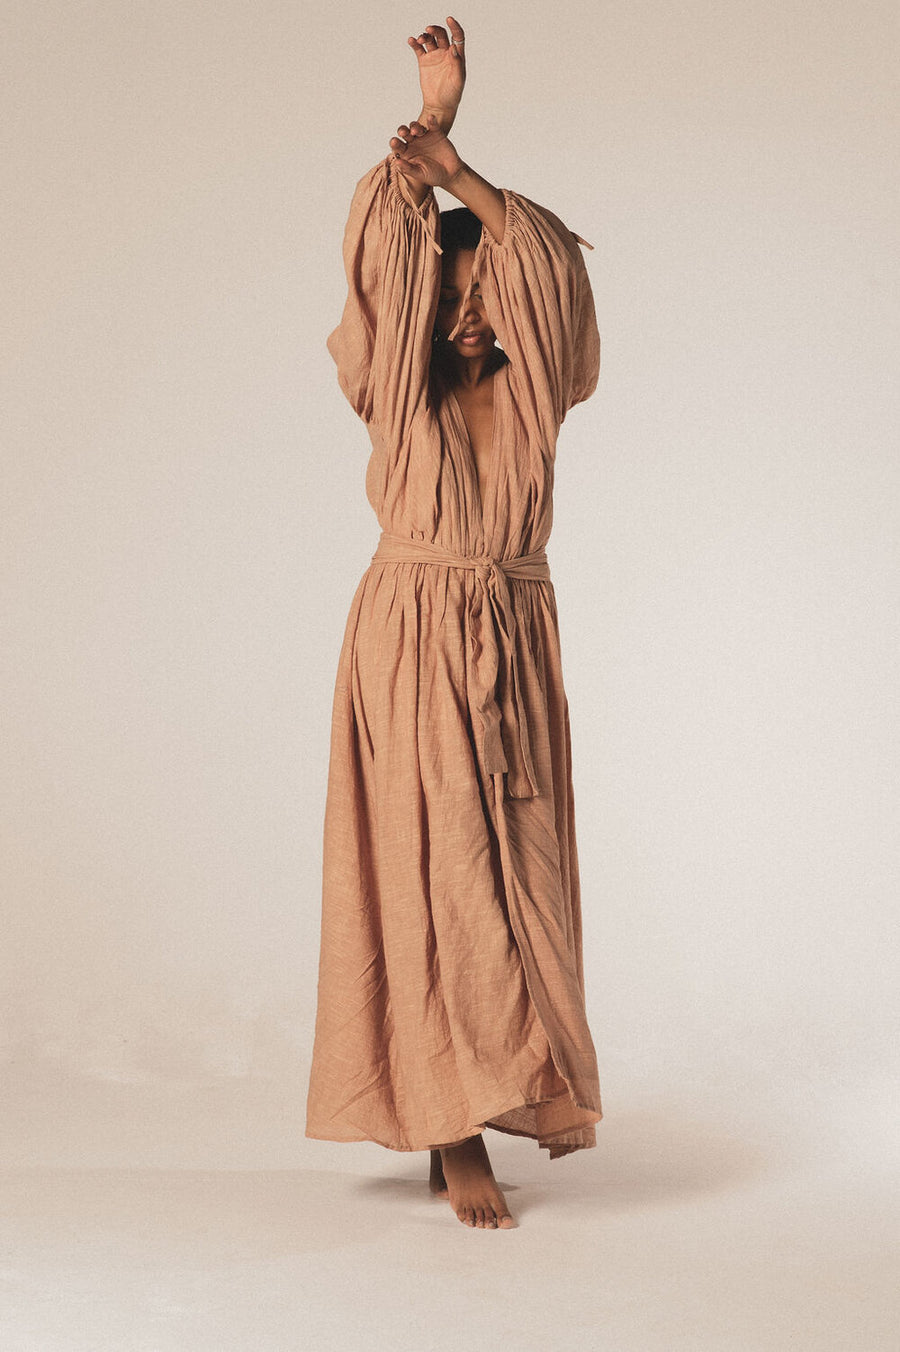 Bohemia Organic Cotton Maxi Dress in Sandstone - Pre Order